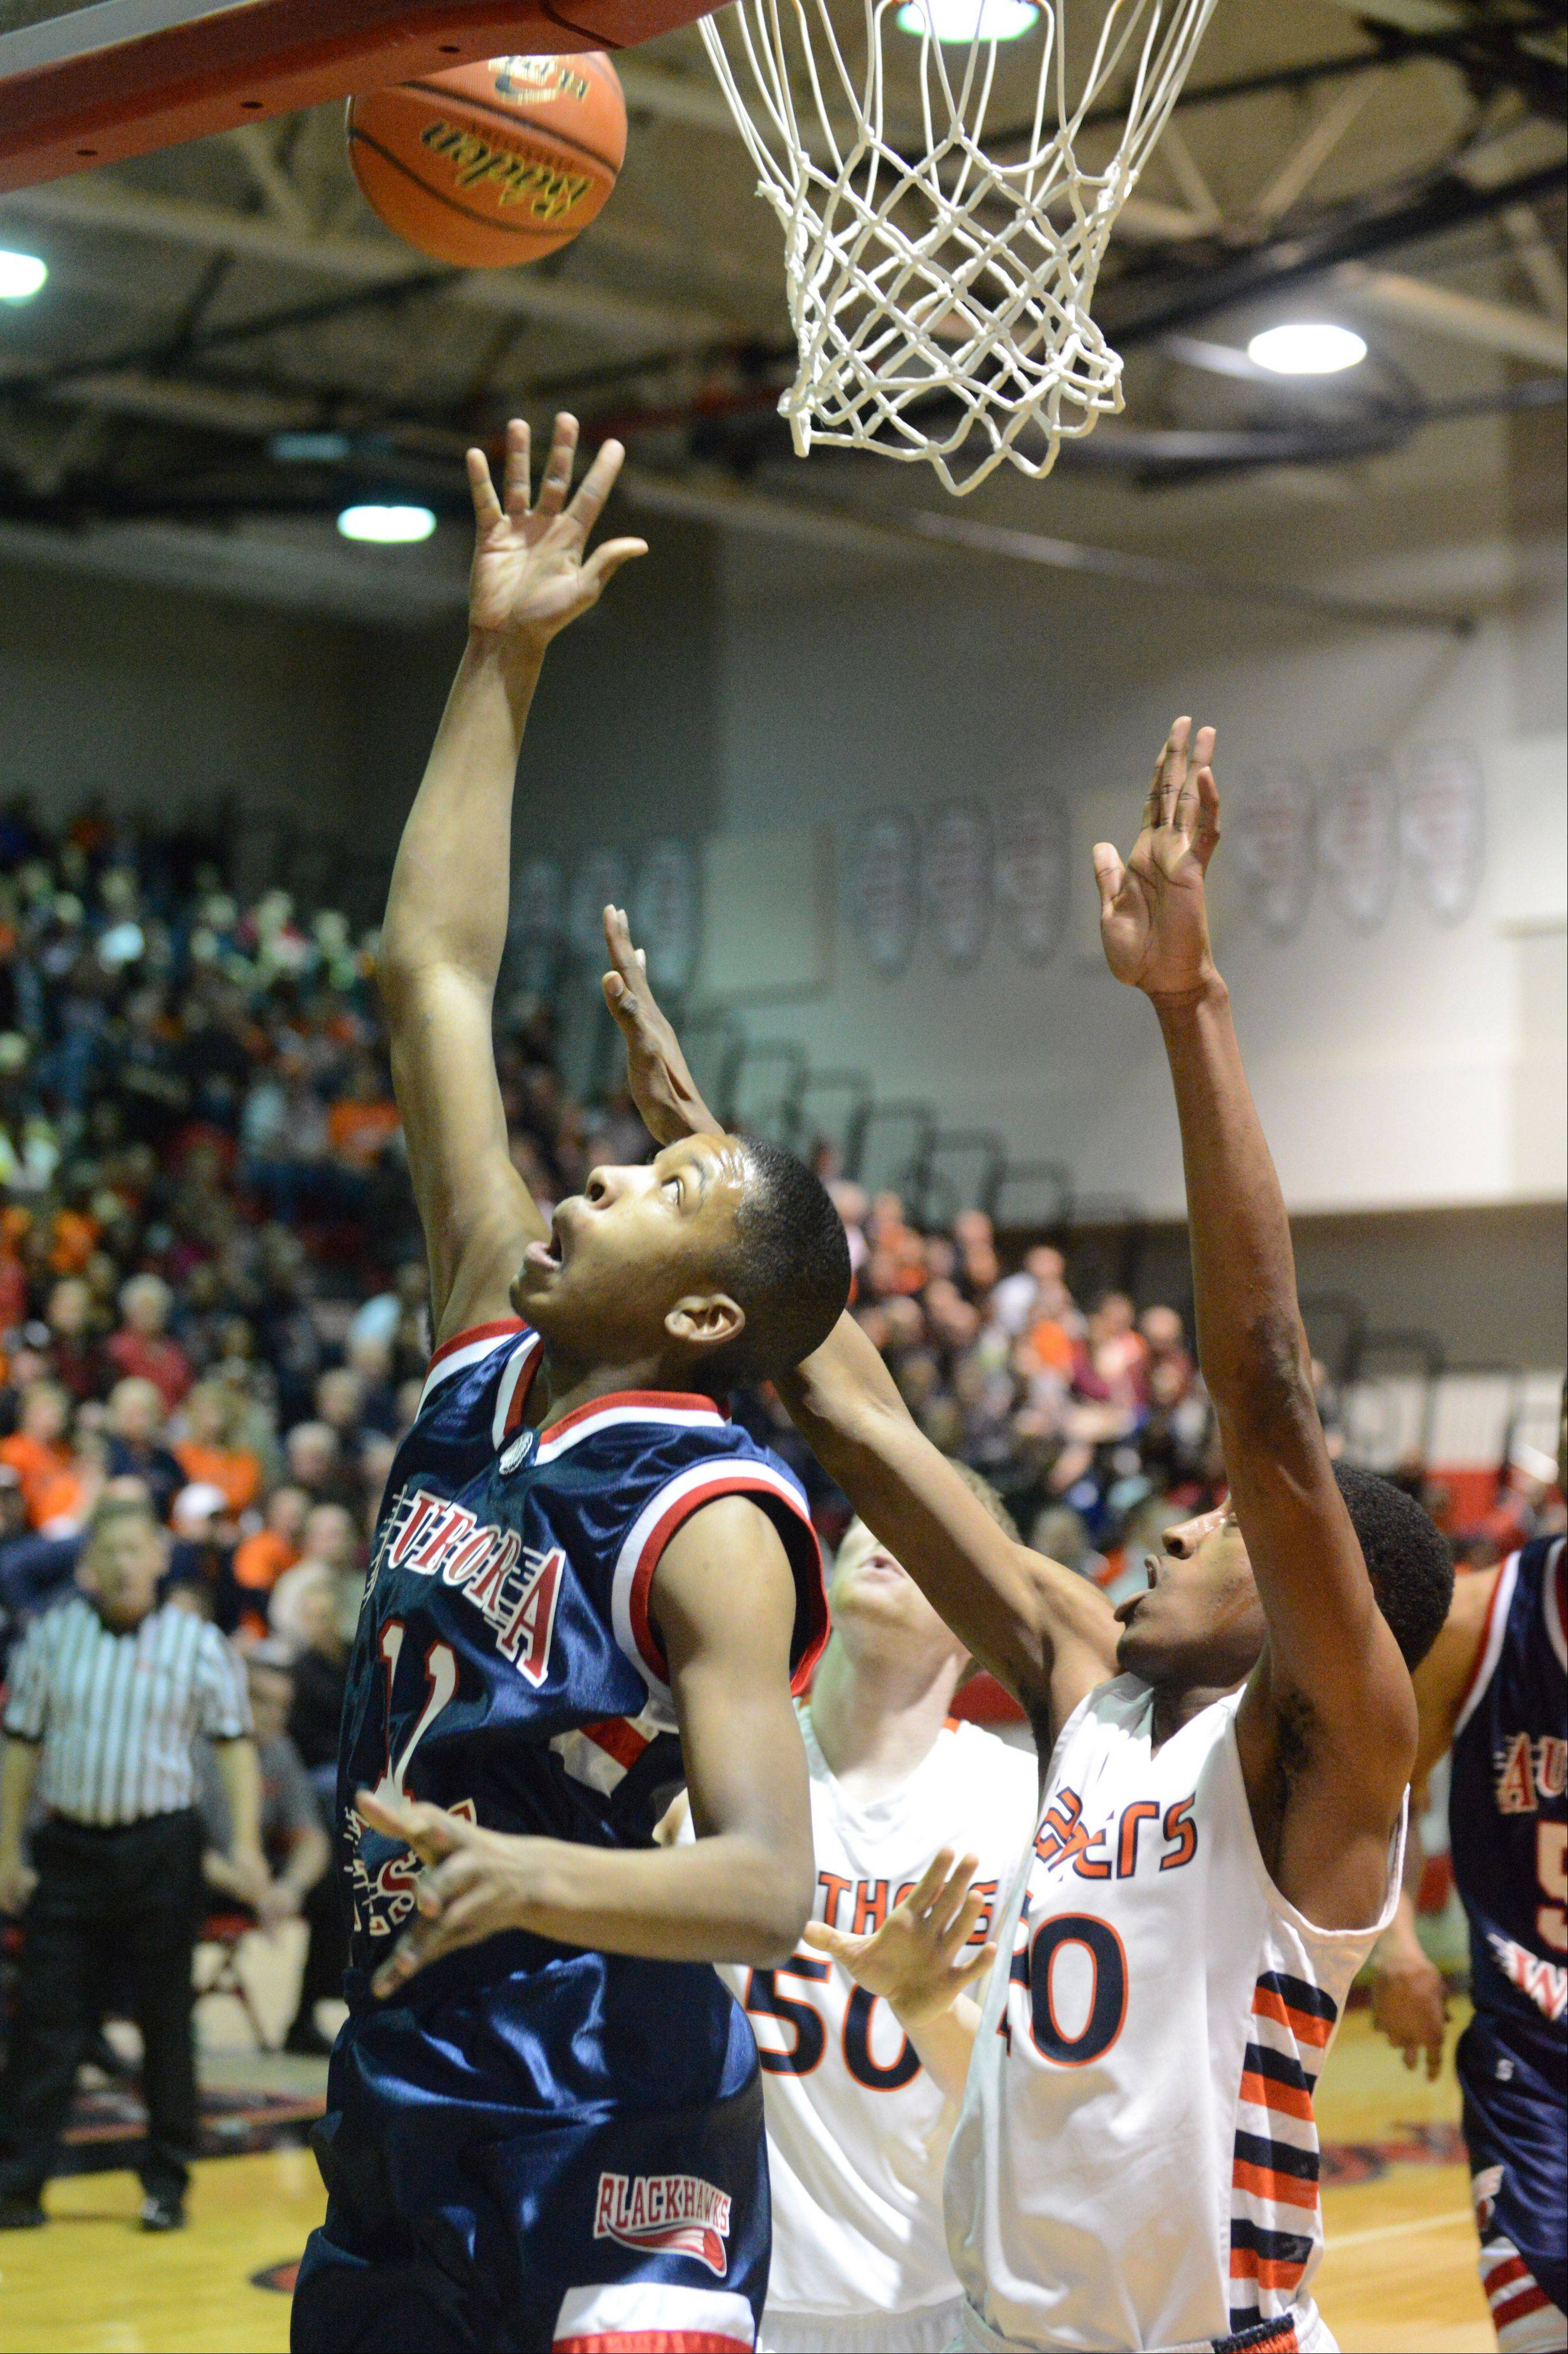 Jontrel Walker of West Aurora takes a shot during the West Aurora vs. Oswego at the Bolingbrook sectional semifinals Wednesday.